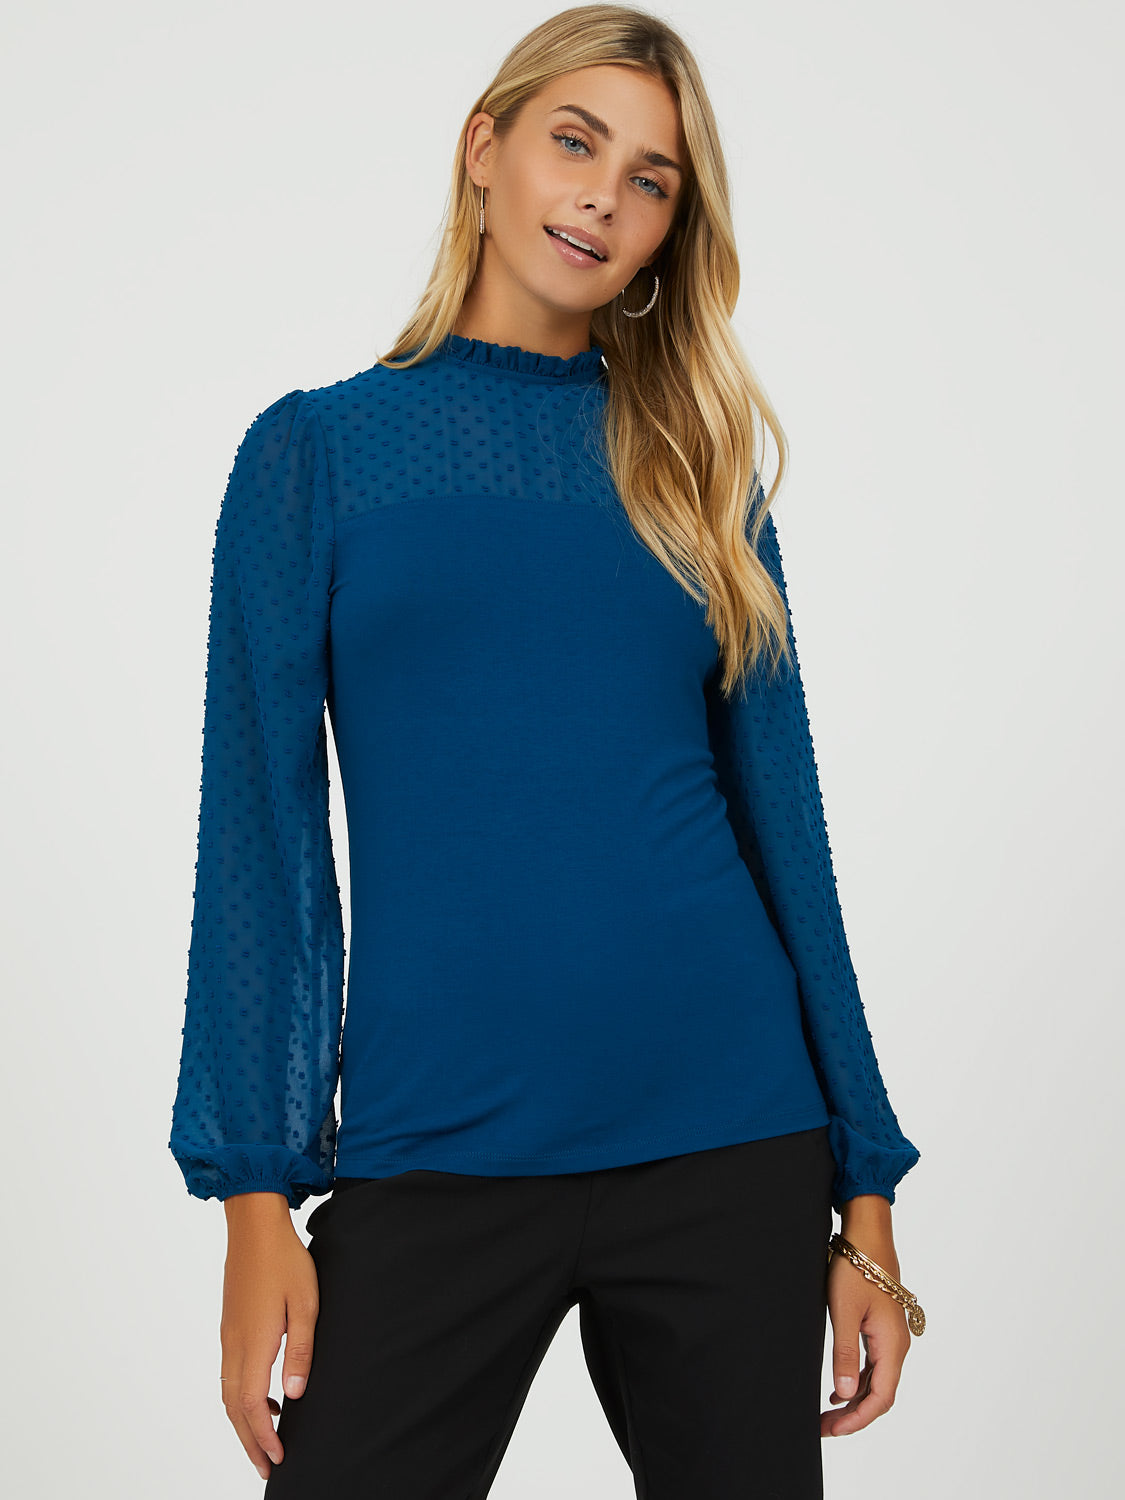 Chiffon Sleeve Pie Crust Collar Top